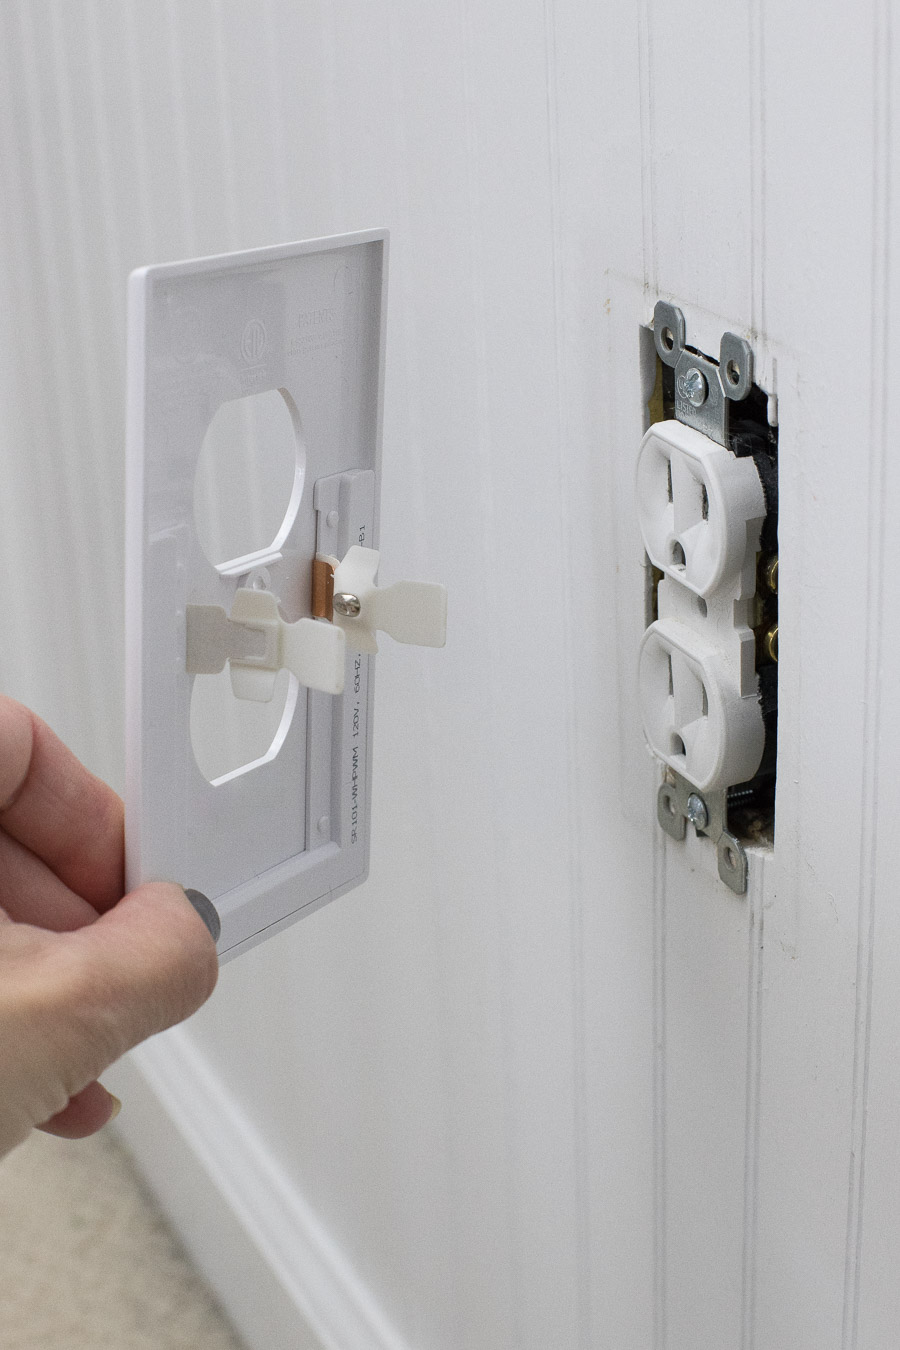 Have and LOVE this! A simple snap-in outlet cover that has a built in nightlight!